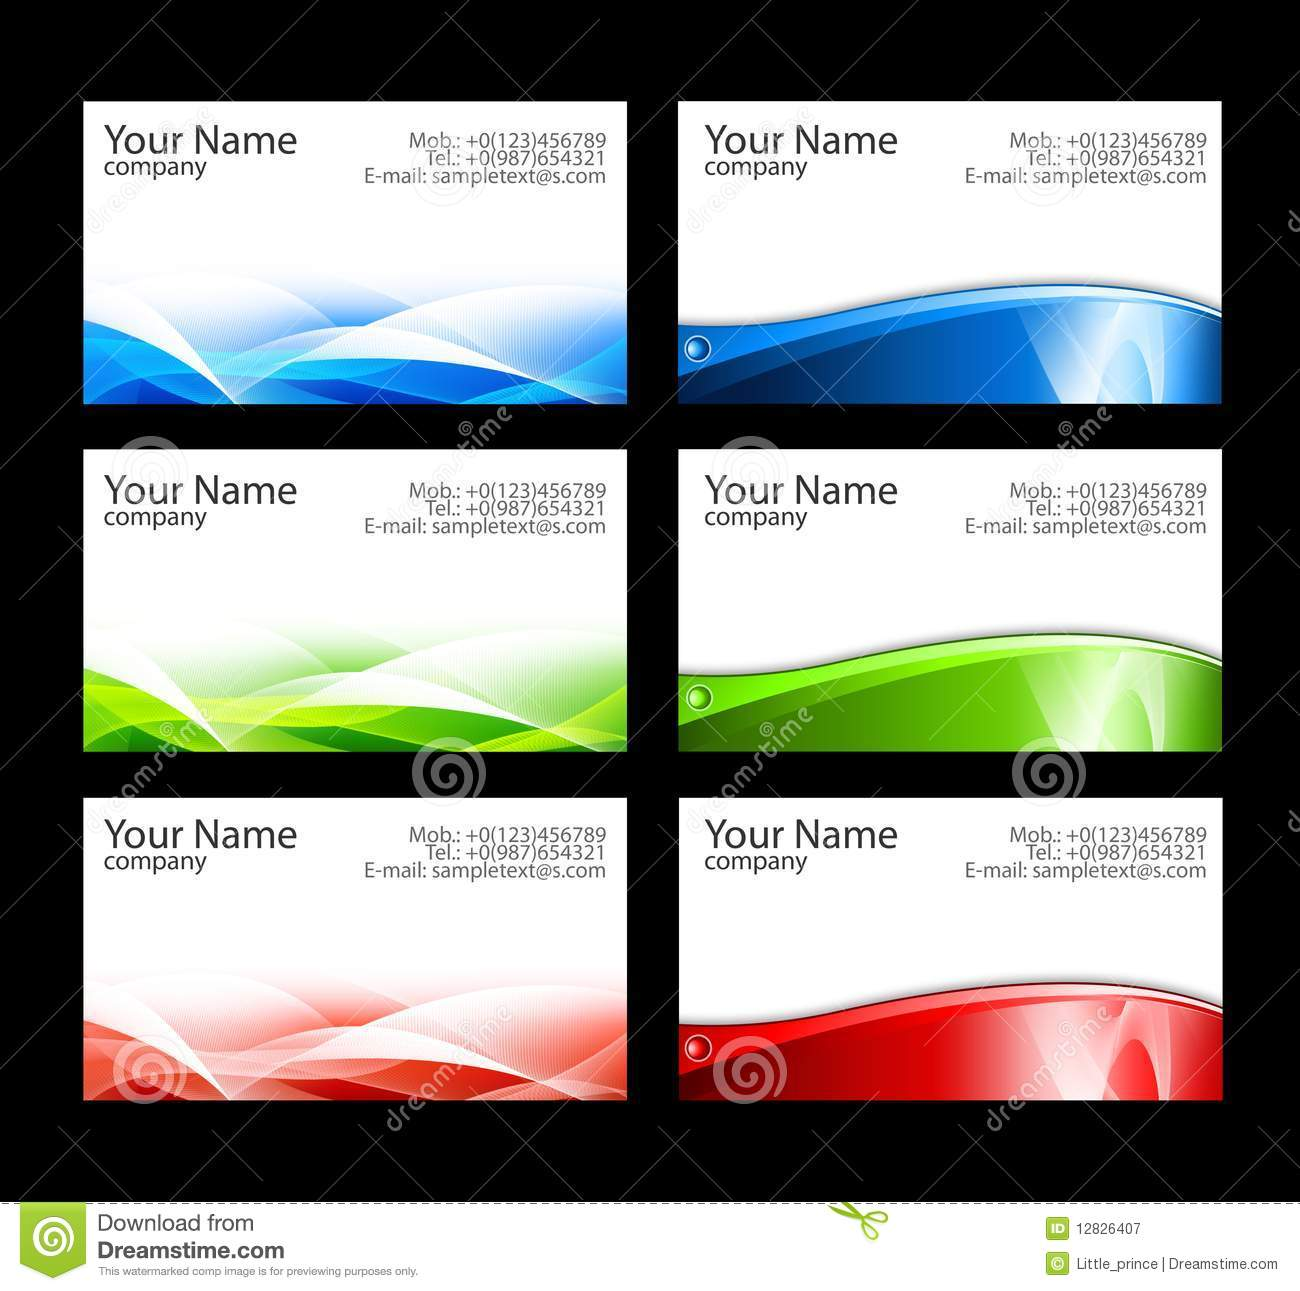 15 Free Avery Business Card Templates Images - Free Business Card ...